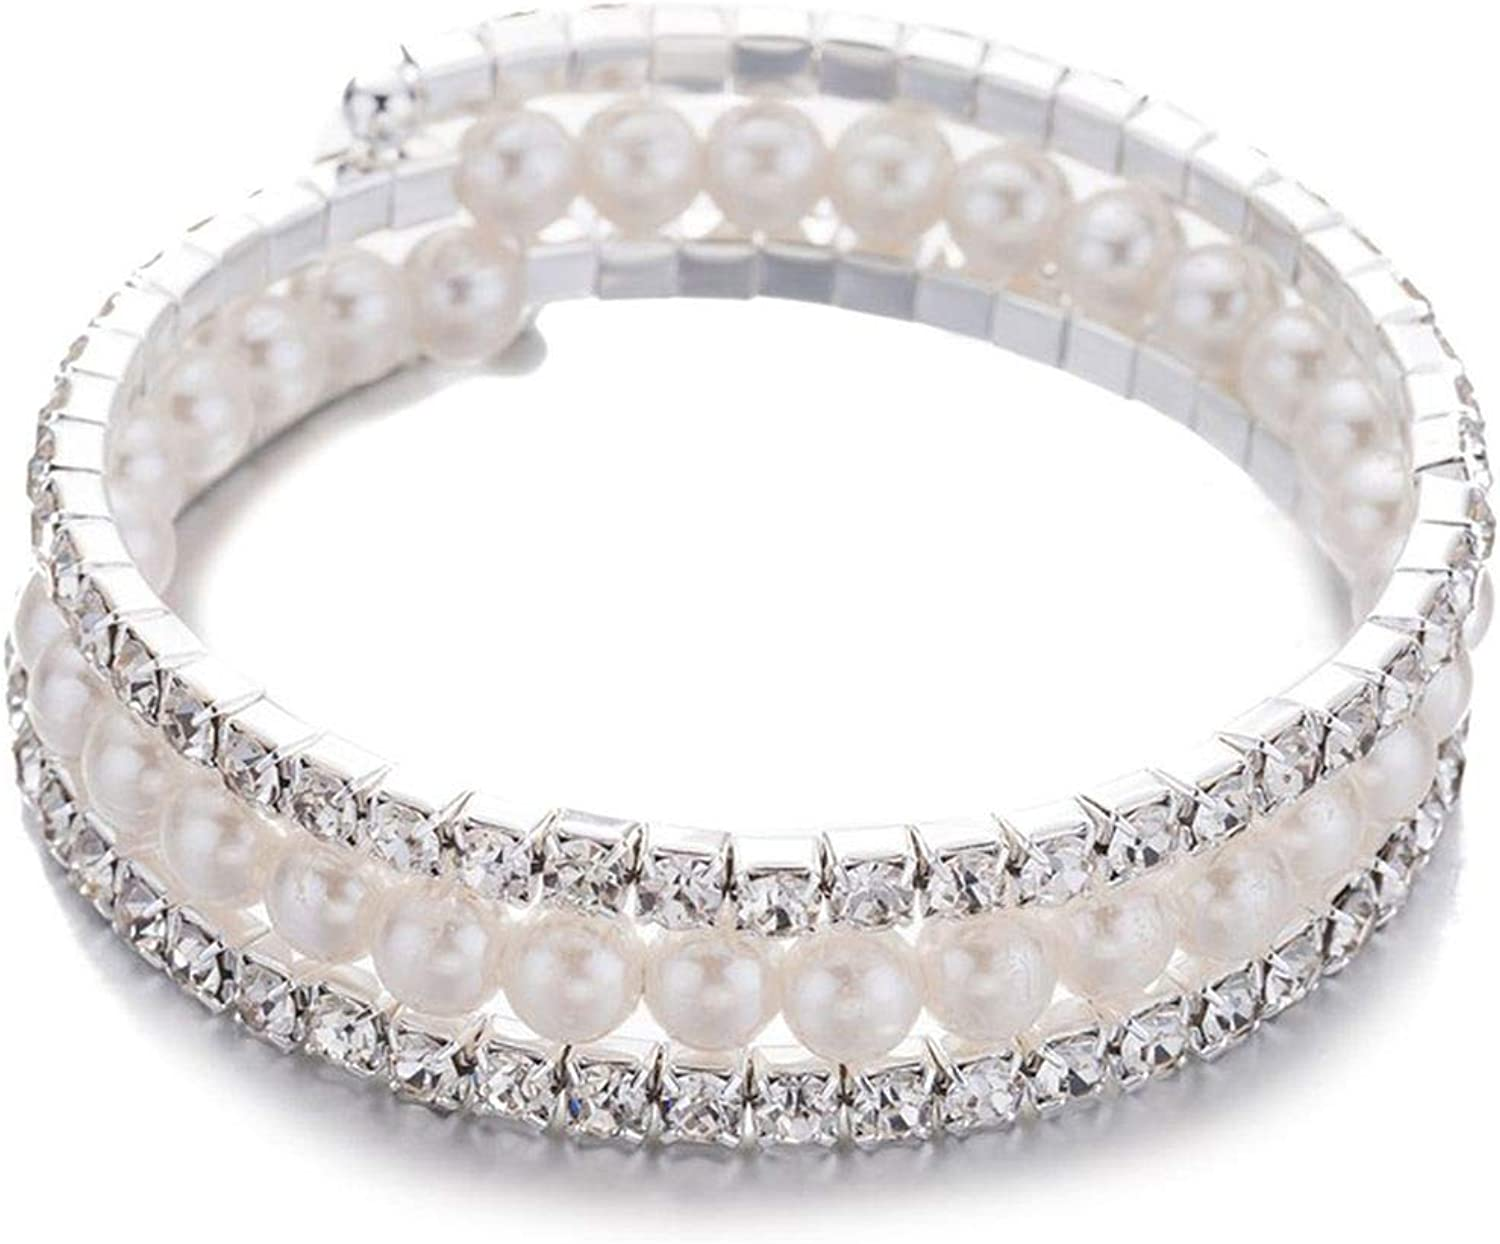 Chic Winding Bracelet Women Multilayer Pearl Crystal Bracelets Bangle Wedding Jewelry Accessories Female Party Bride Gift